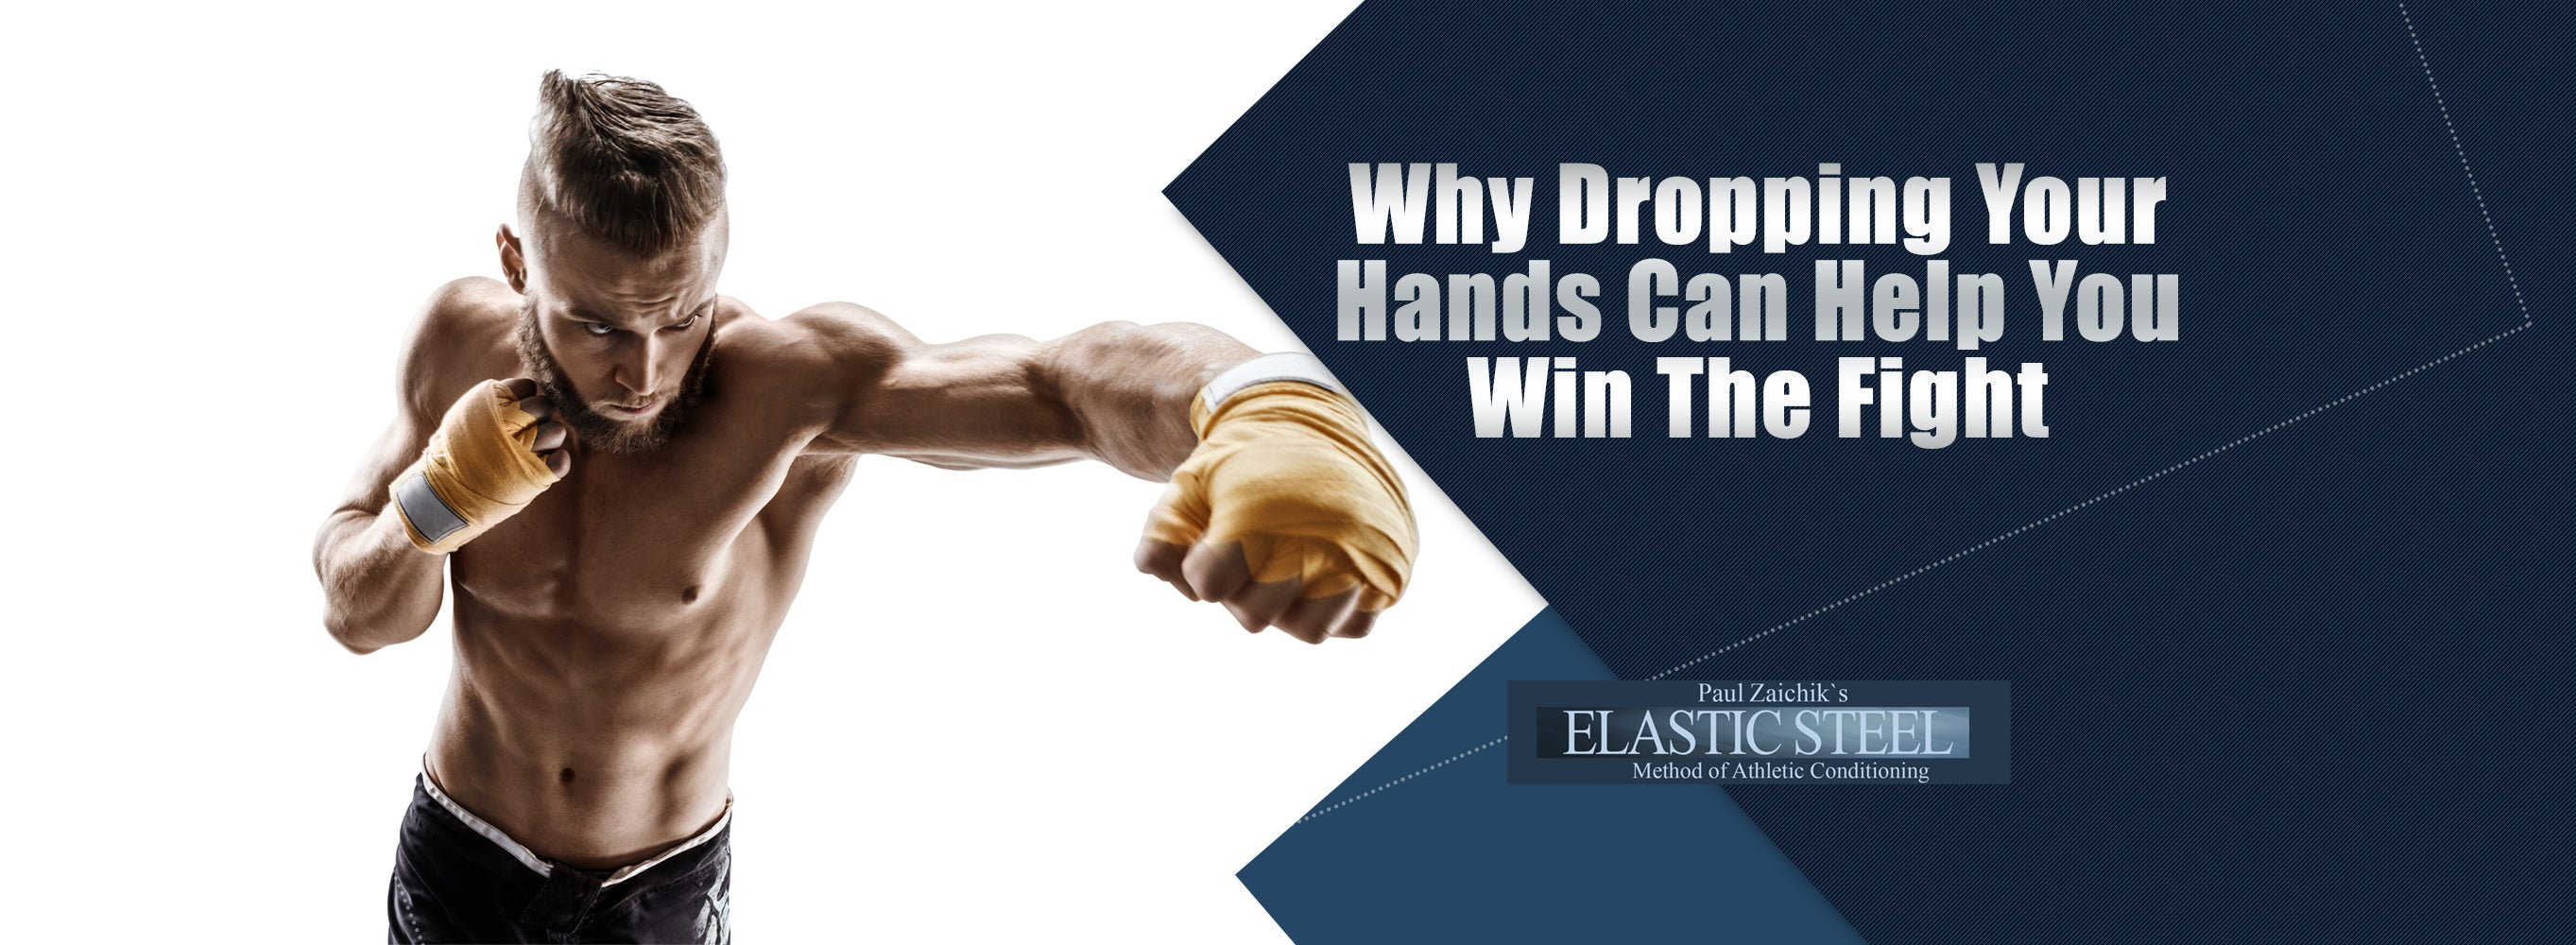 Why dropping your hands can help you win the fight